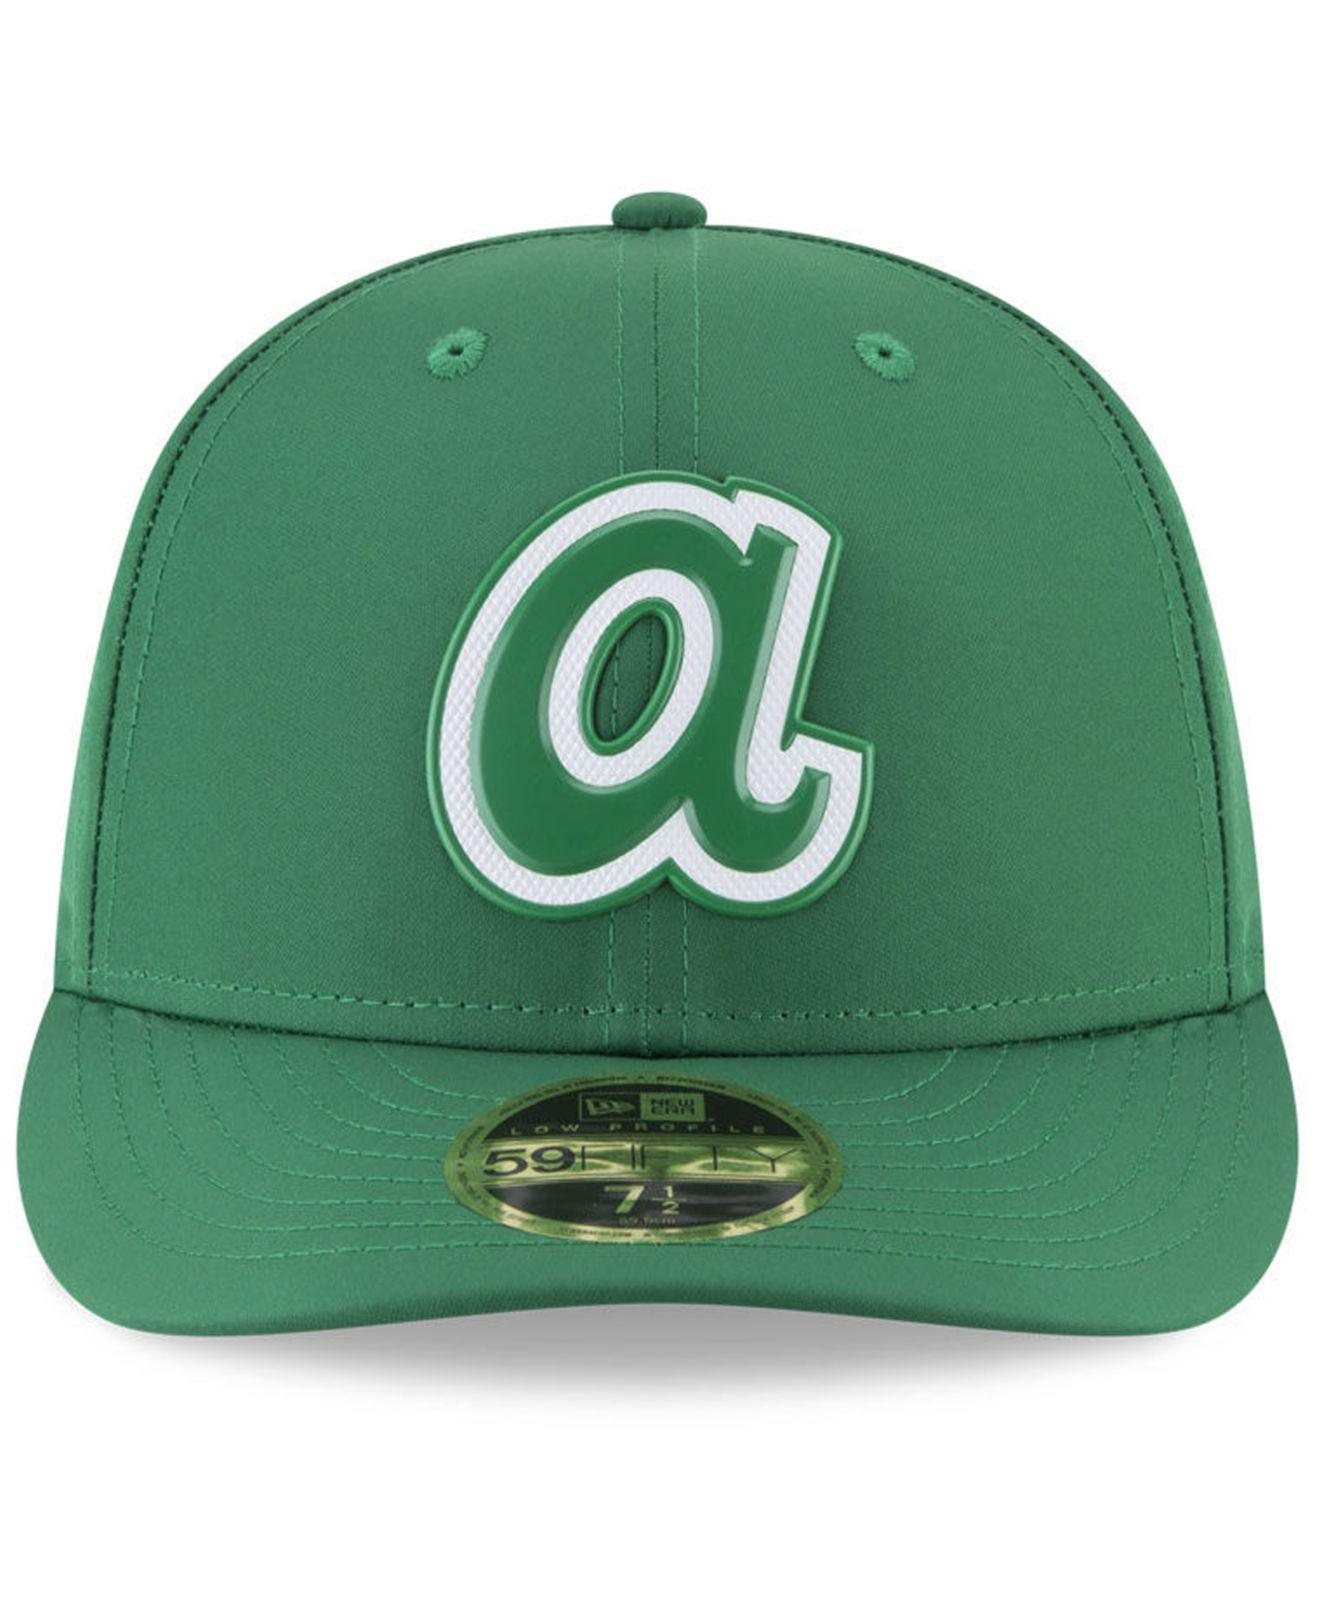 buy popular 5ddb5 a25b4 ... new era navy fan retro low profile 59fifty fitted hat d4b1d 6d703   italy lyst ktz atlanta braves st. pattys day pro light low crown 59fifty  fitted cap